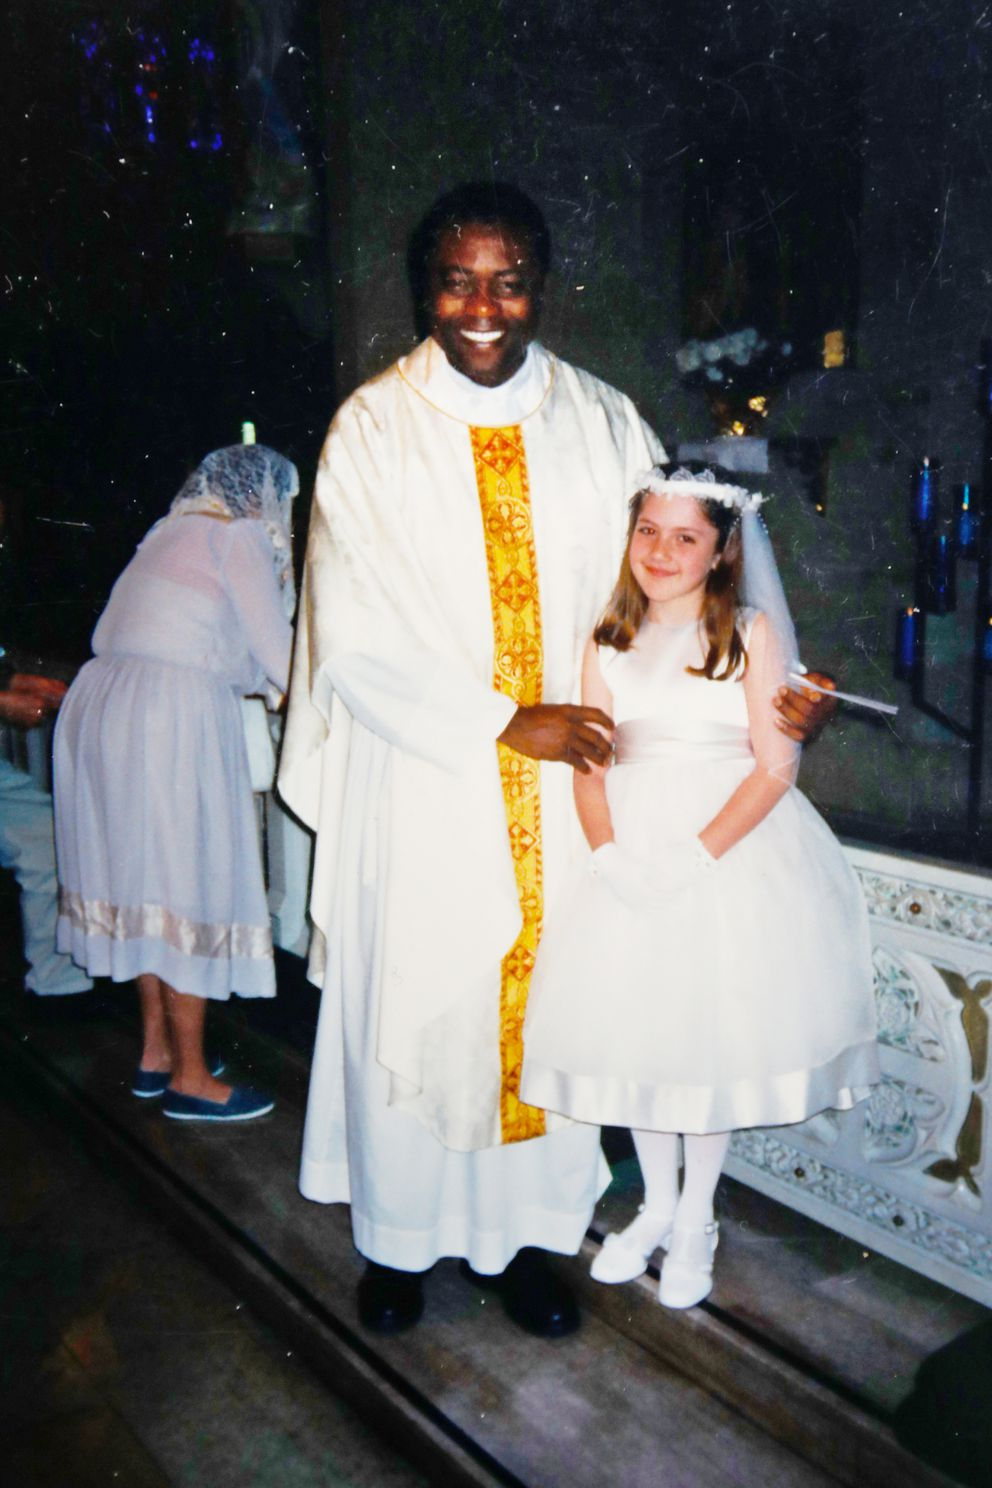 This undated photo provided by Mary Rose Maher in 2019 shows her as a child standing with Rev. Komlan Dem Houndjame at The Assumption of the Blessed Virgin Mary Church in Detroit. Two years after arriving at The Assumption of the Blessed Virgin Mary Church in 1999, Detroit Archdiocese officials said they asked Houndjame to return to his home country, Togo, after learning of accusations of sexual misconduct against him in Detroit and at an earlier posting in Florida. Instead he went to a treatment facility in St. Louis. In 2002, Detroit police arrested him and charged him with sexually assaulting a member of the church's choir. (Courtesy Mary Rose Maher via AP)